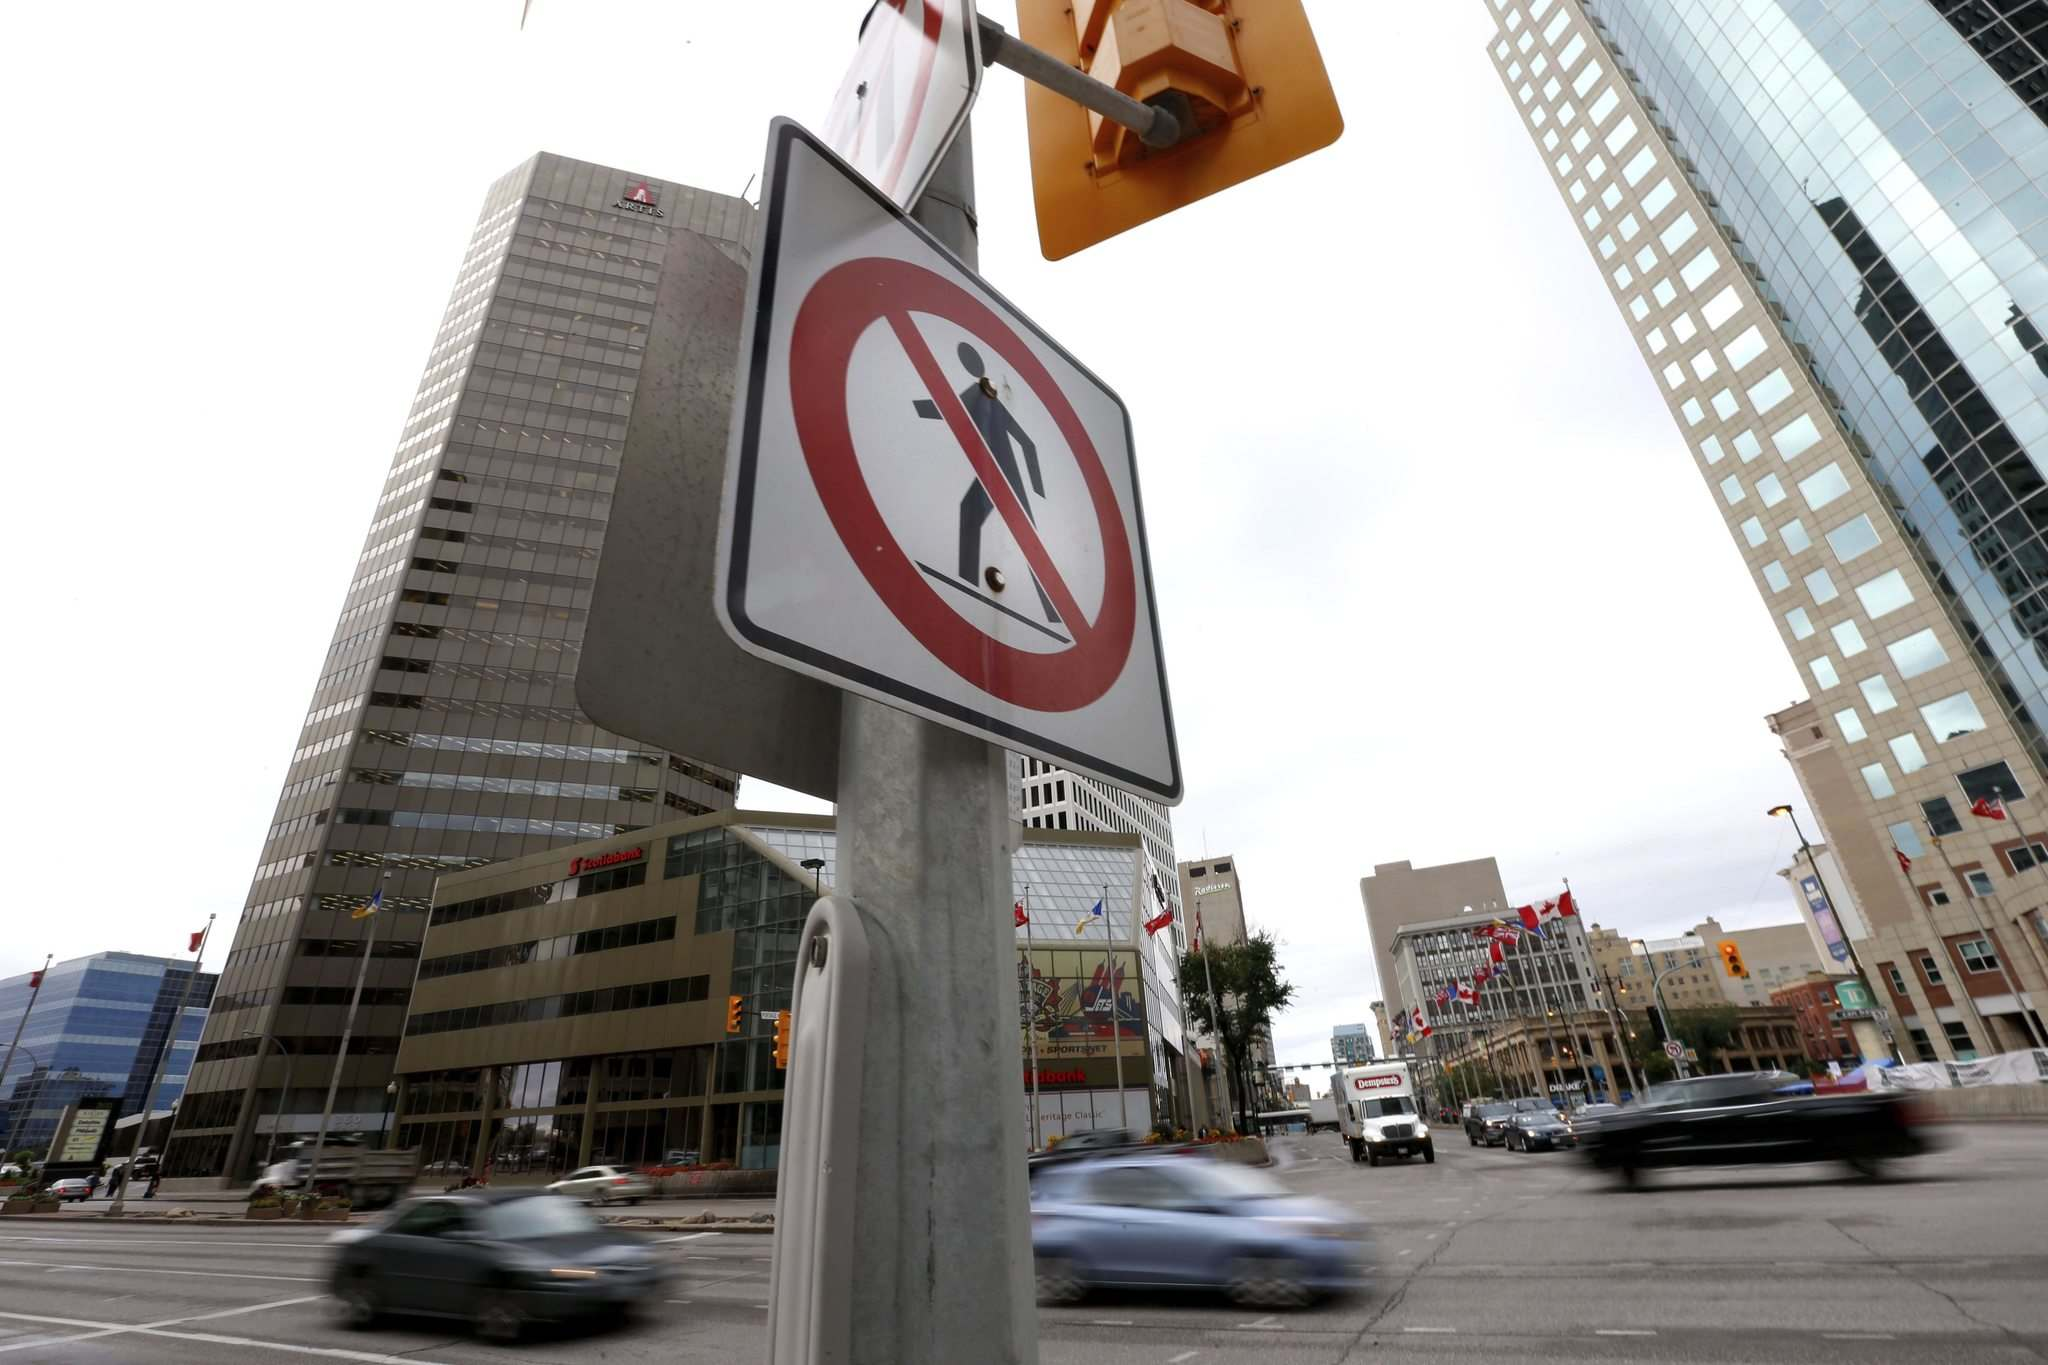 WAYNE GLOWACKI / WINNIPEG FREE PRESS FILES</p><p>A plebiscite on reopening Portage and Main to pedestrians will give all Winnipeggers a say on the issue, but that isn't necessarily a fair way to handle the question.</p>